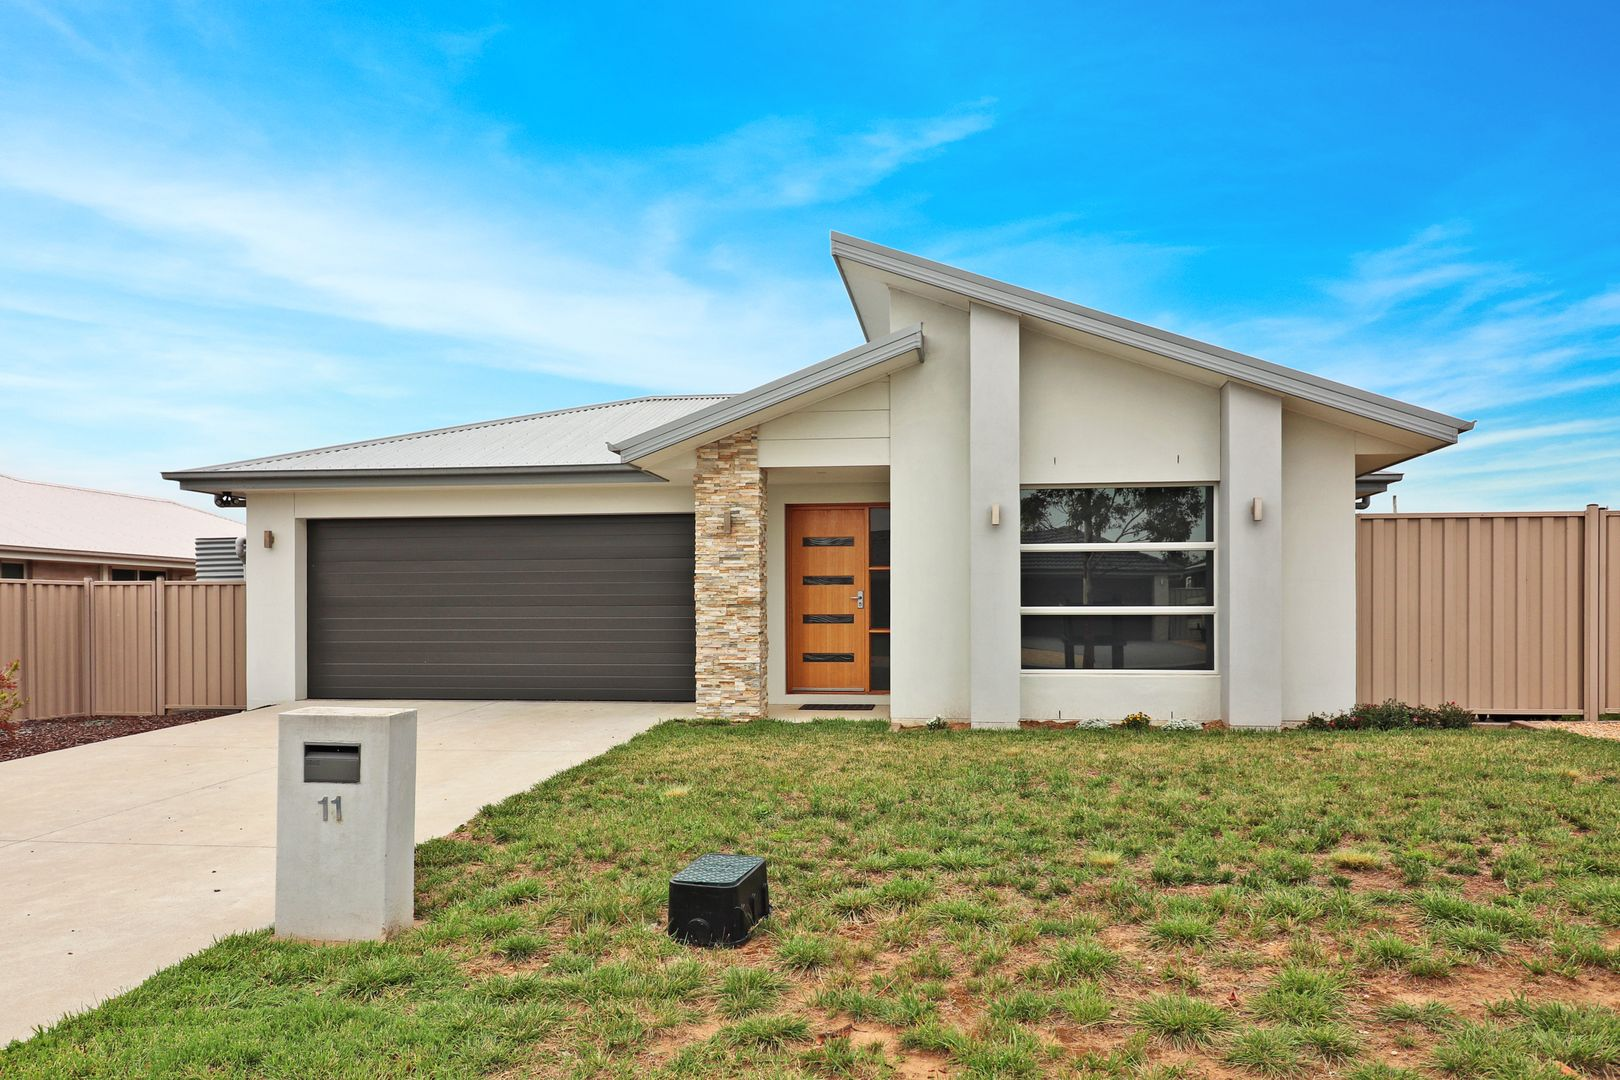 11 Hereford Street, Bungendore NSW 2621, Image 0